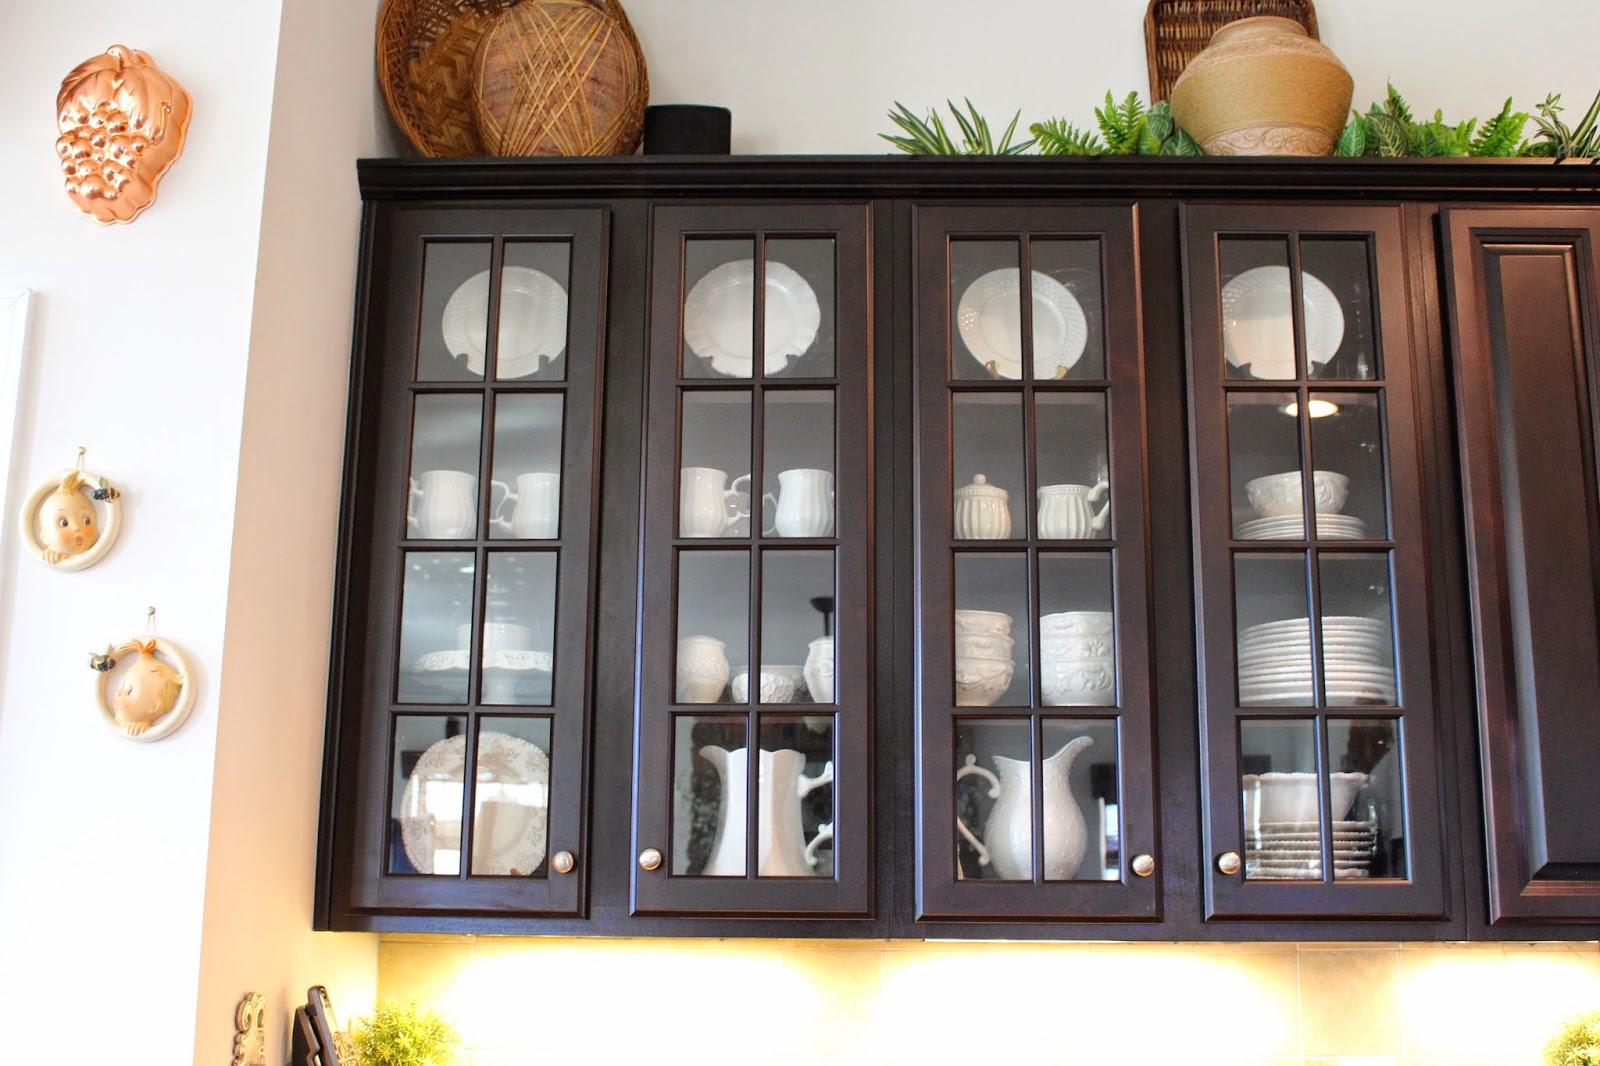 put all white dishes in the glass front cabinets. I love the look